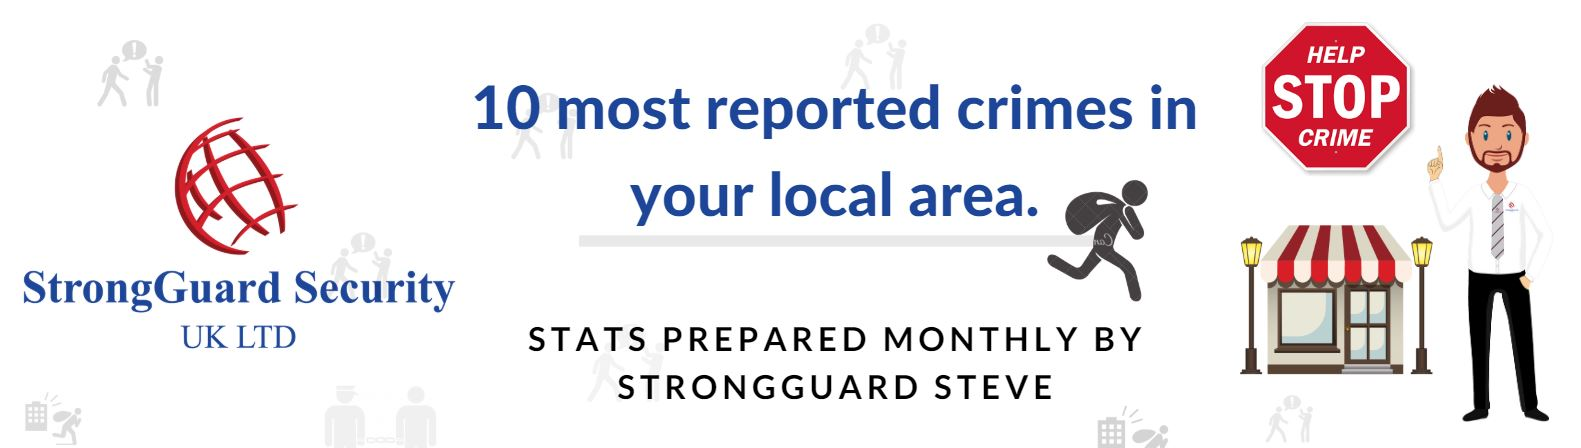 10 MOST REPORTED CRIMES IN ST HELENS- MARCH 2019